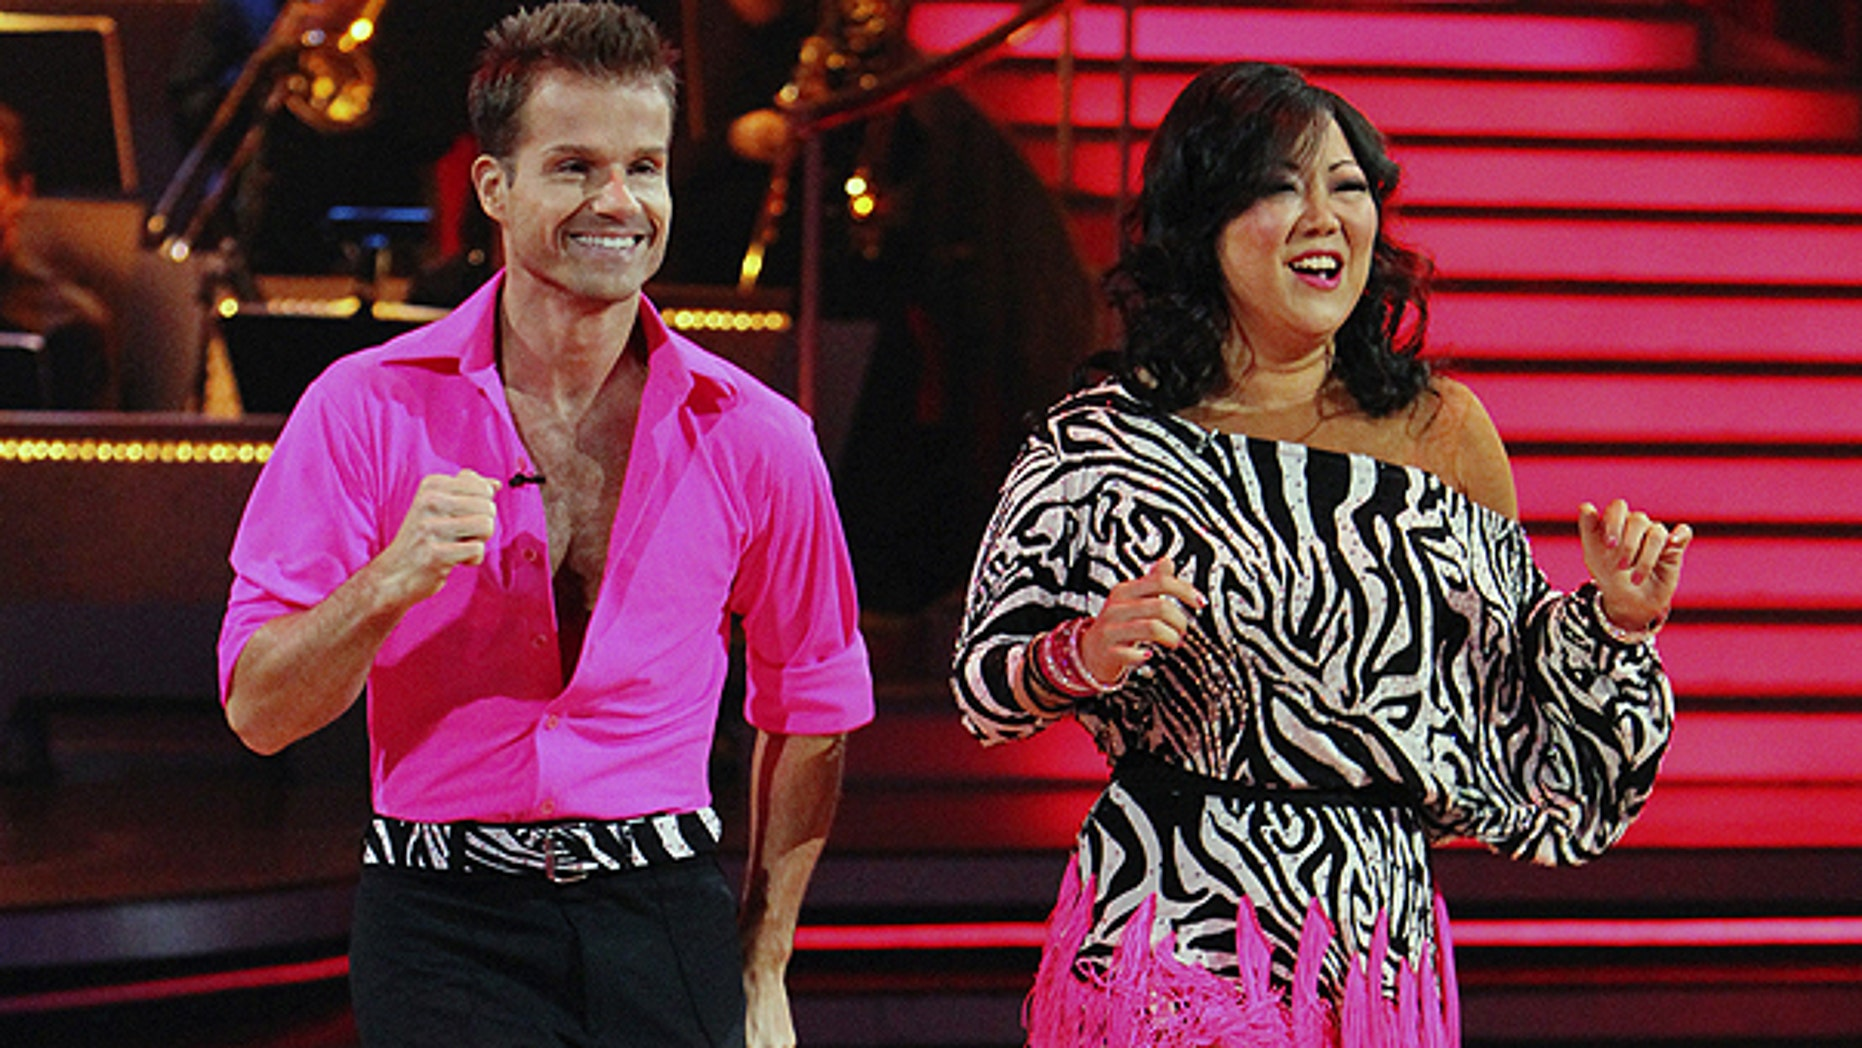 Sept. 27: In this publicity image released by ABC, Margaret Cho, right, and her partner Louis Van Amstel perform on the celebrity dance competition series 'Dancing with the Stars' in Los Angeles.